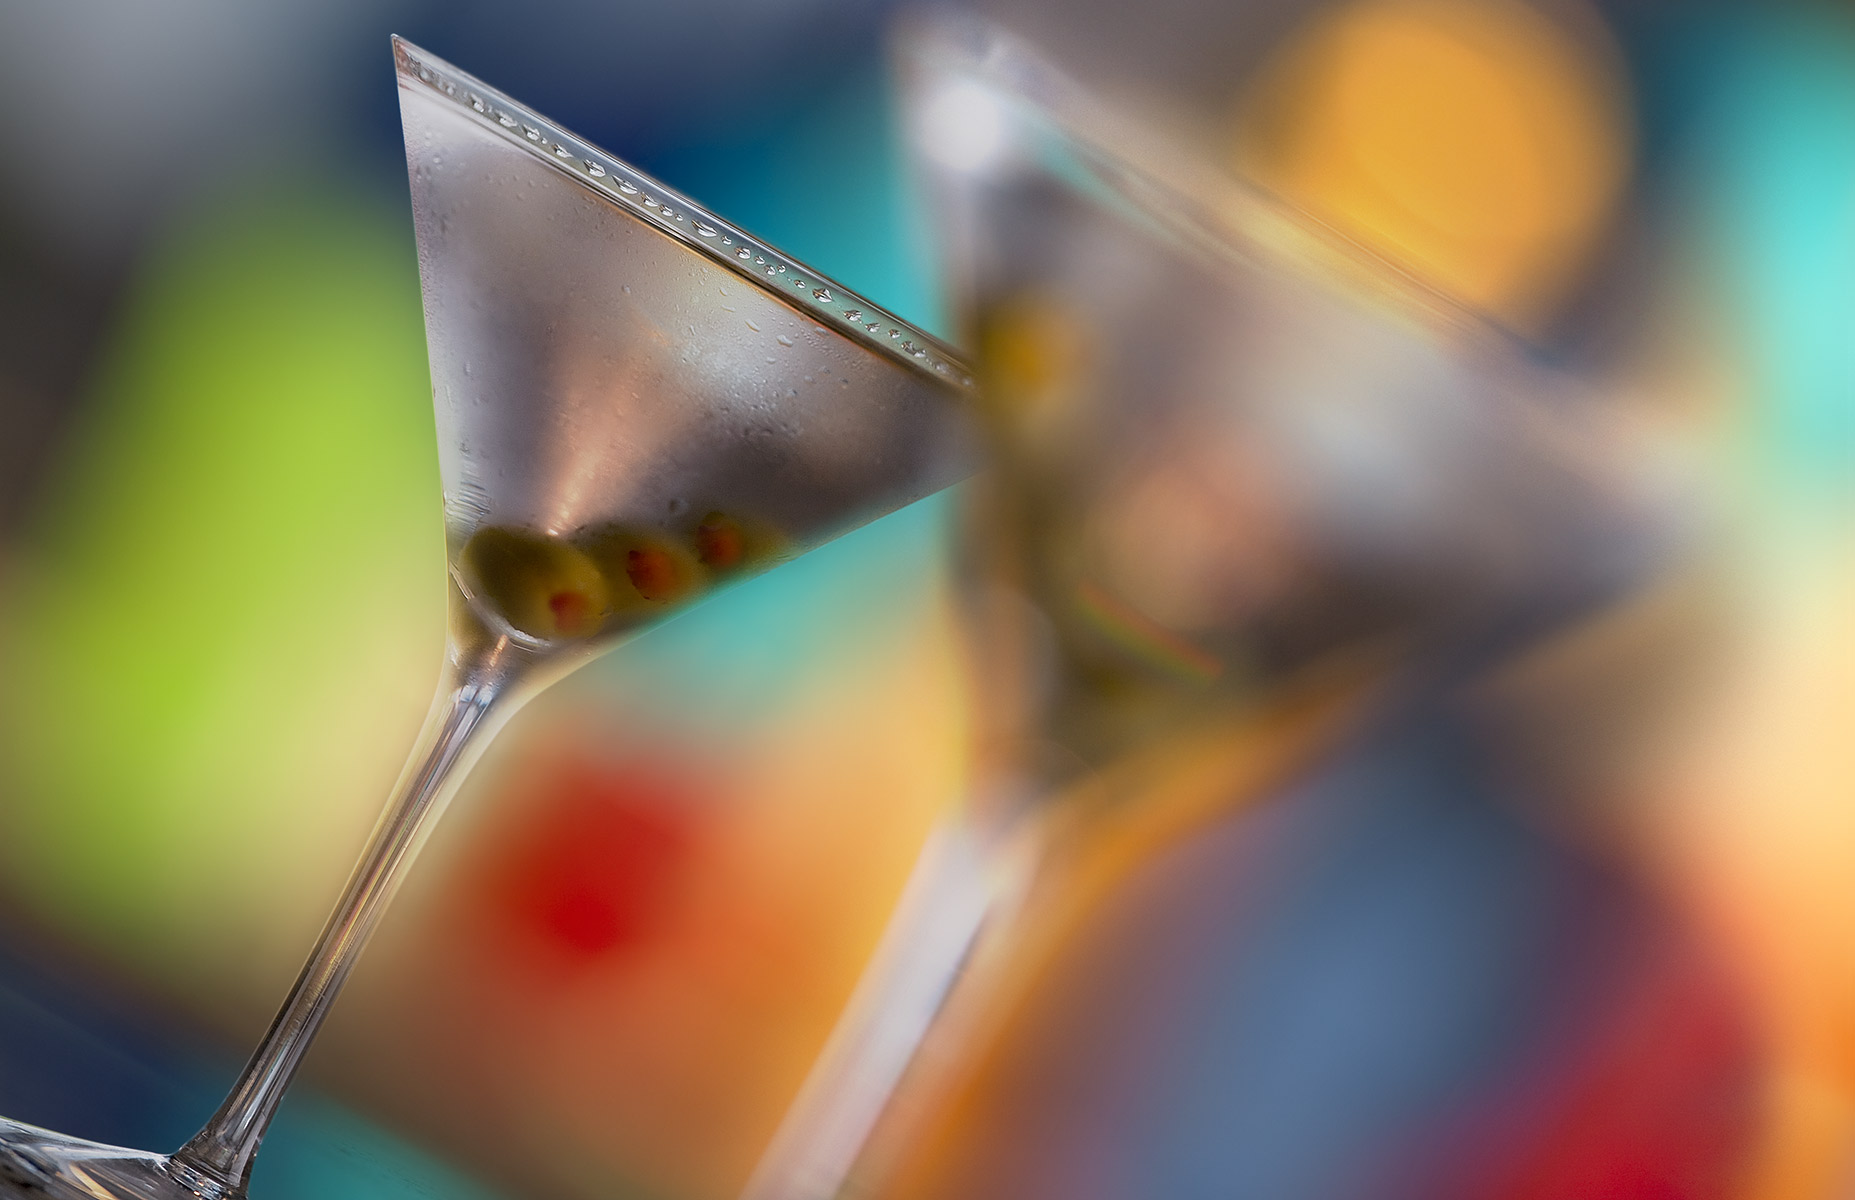 The camera placement is dead-on to the naturally sweating martini glass and cocktail which also has three pimento stuffed olives on the skewer. Served on a reflective black bar top the multiple, saturated out of focus colors exhibit a desireable bokeh effect and are reflected in the surface. The extremely out of focus second glass dominates the center and right of frame. The subjects are tilted towards 30º in this horizontally cropped photograph.